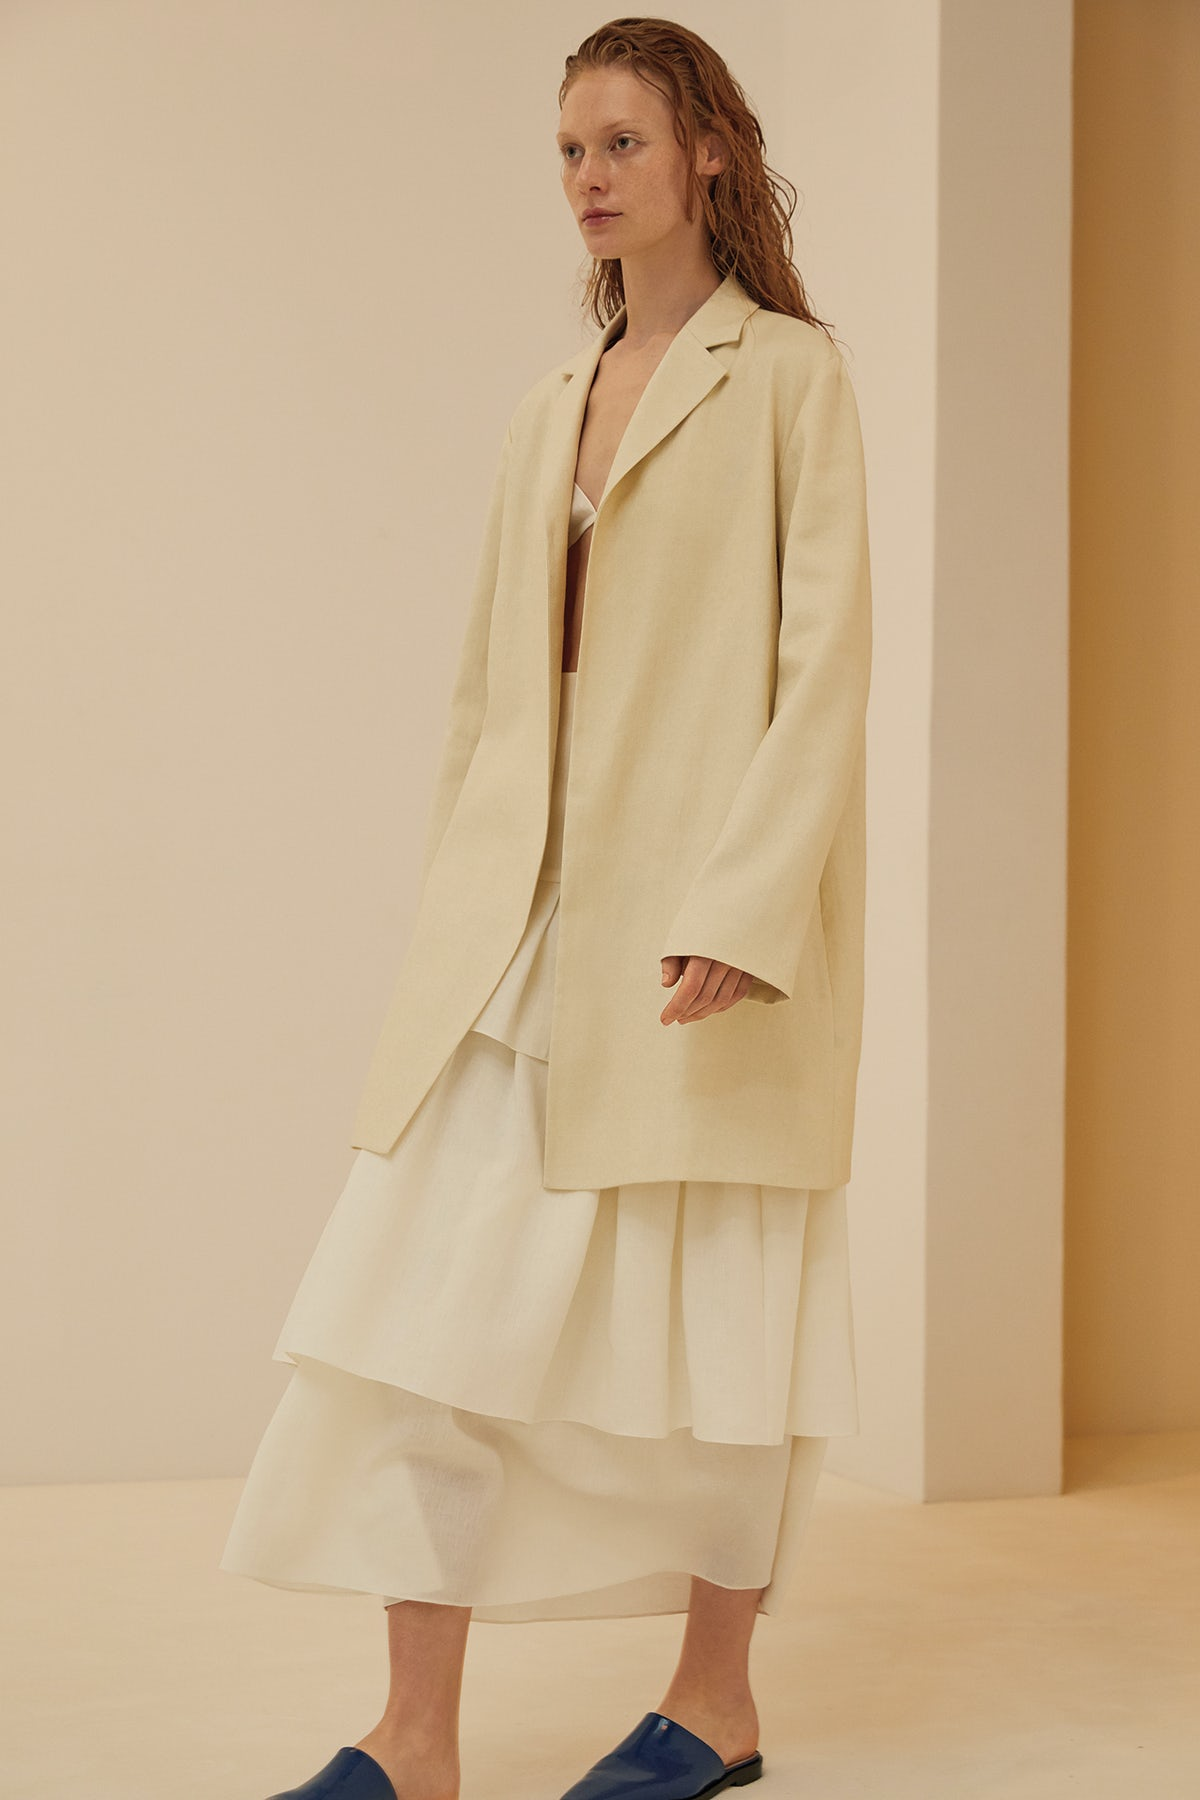 b572fc4d8d Theory Women's Spring 2019 Lookbook | Theory's Projects | BoF ...